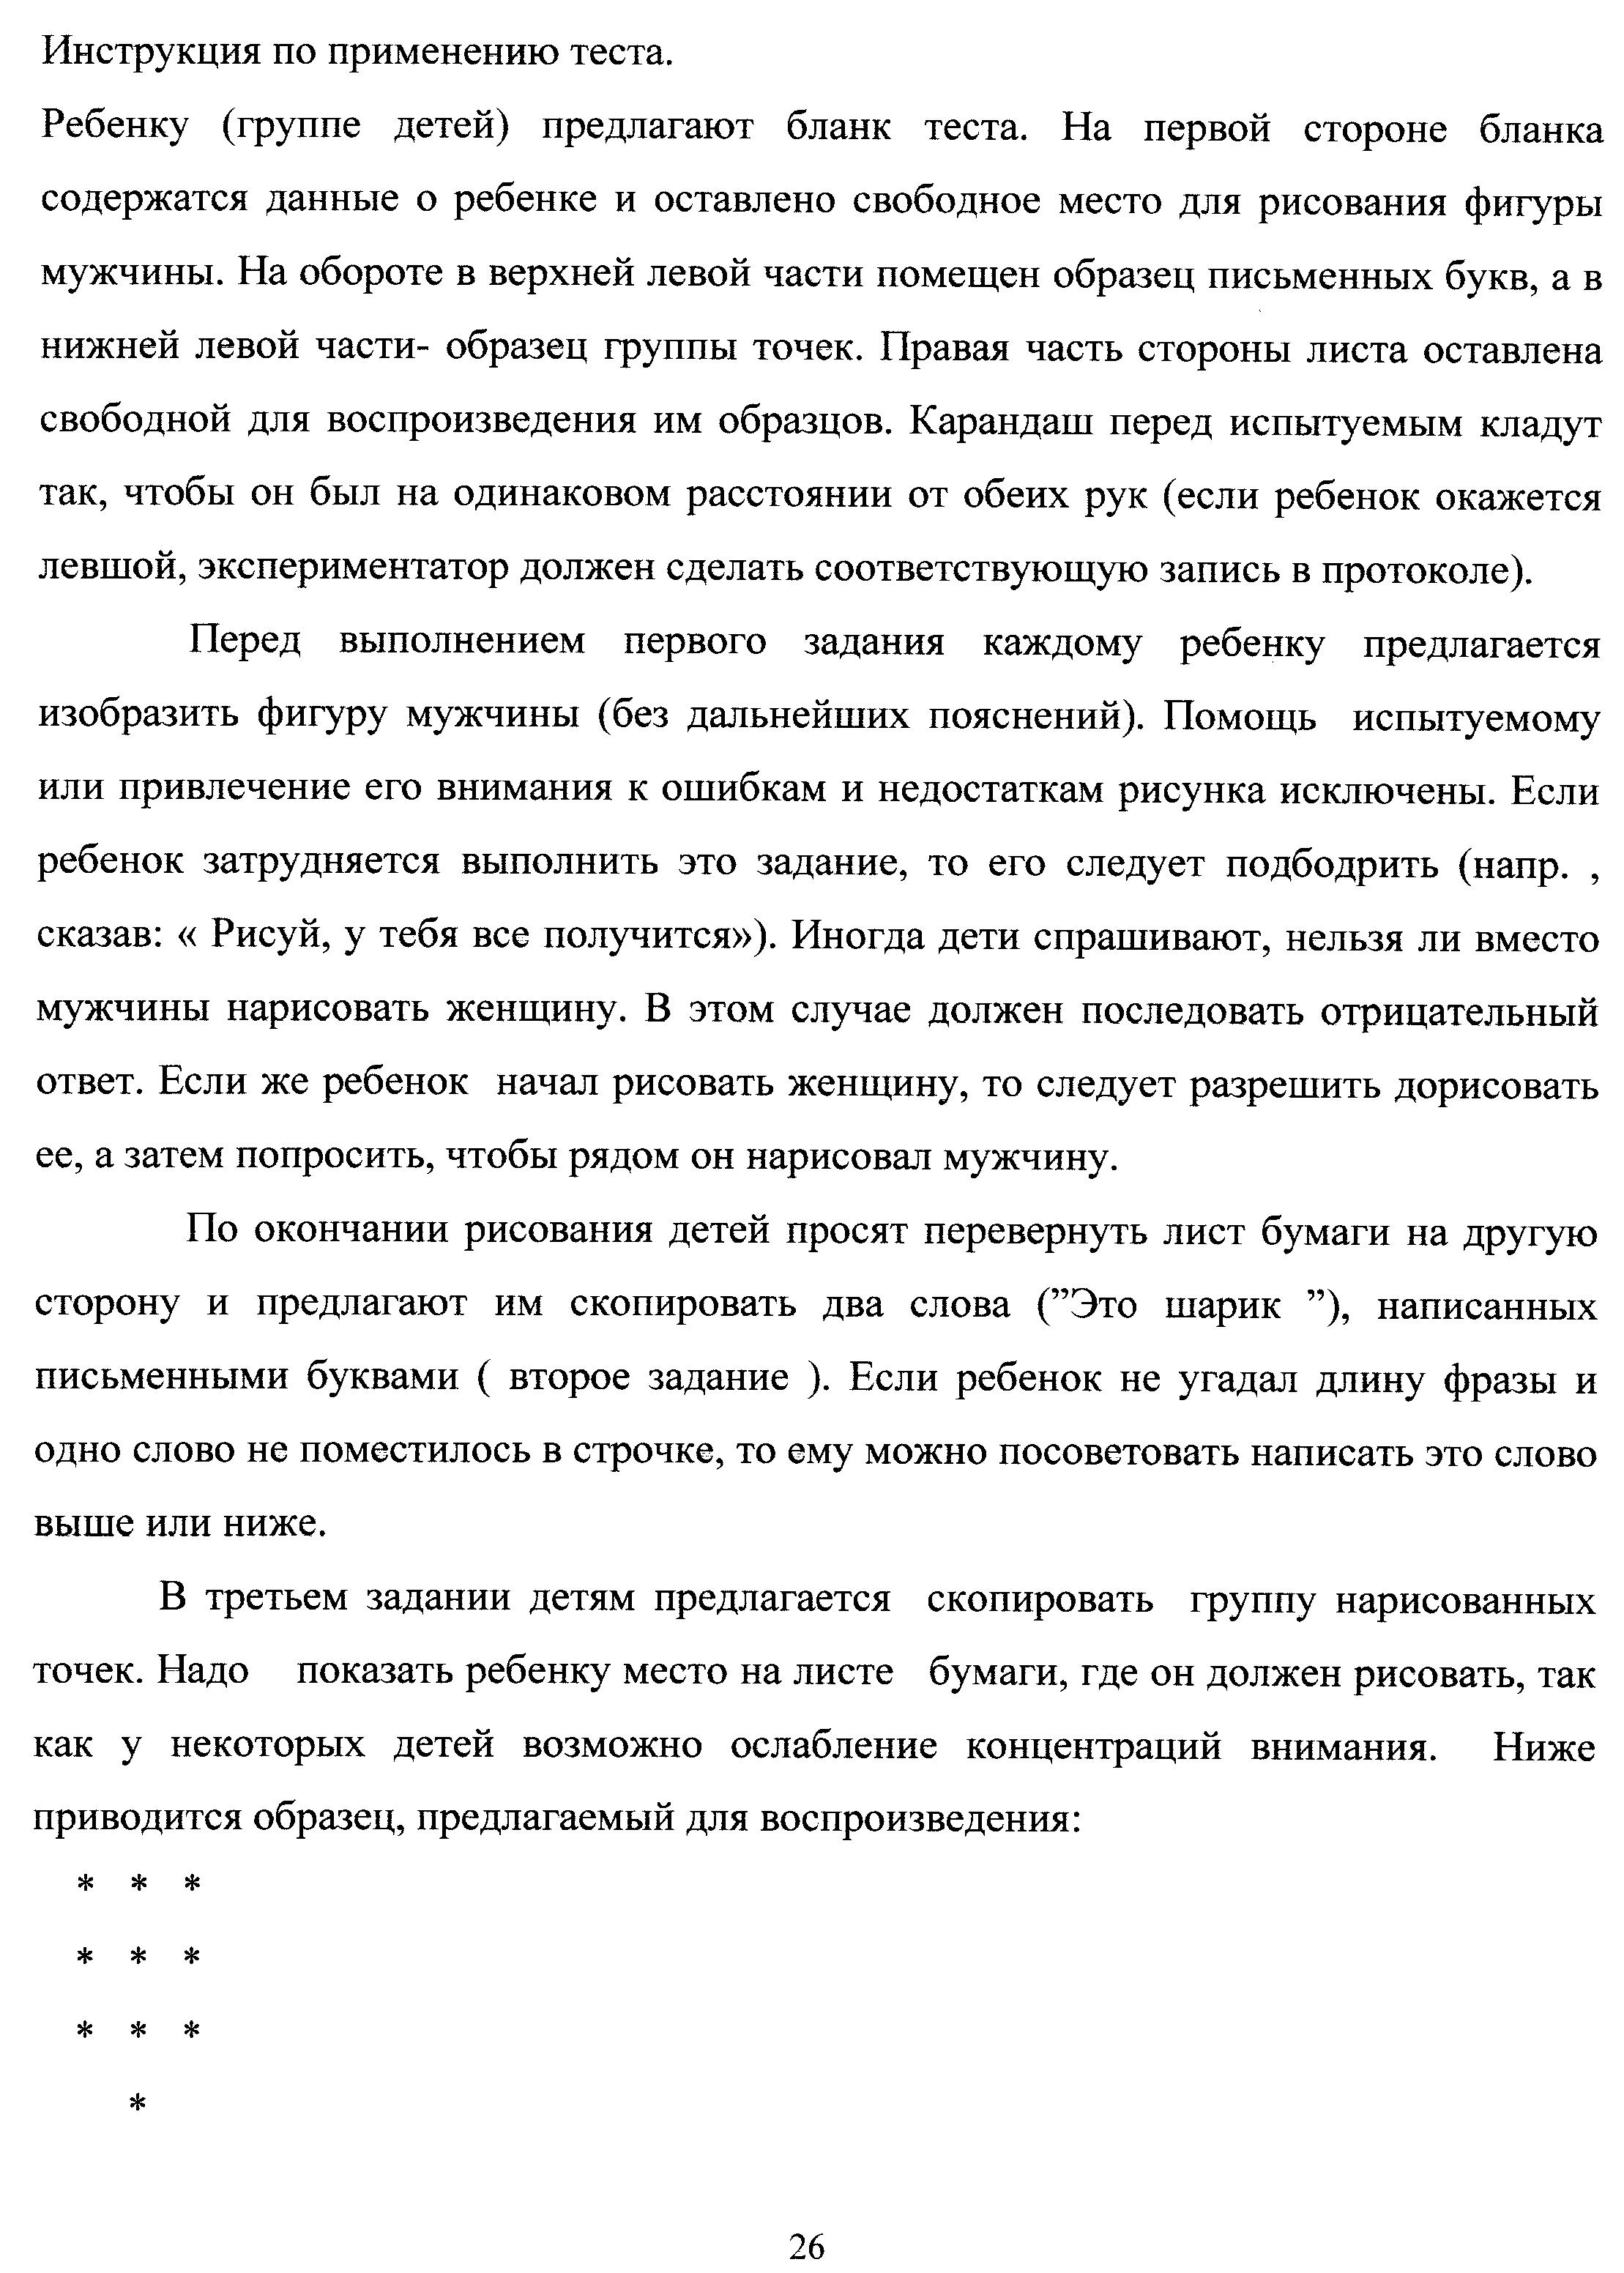 C:\Users\ЛАРИСА\Documents\Scanned Documents\Рисунок (130).jpg